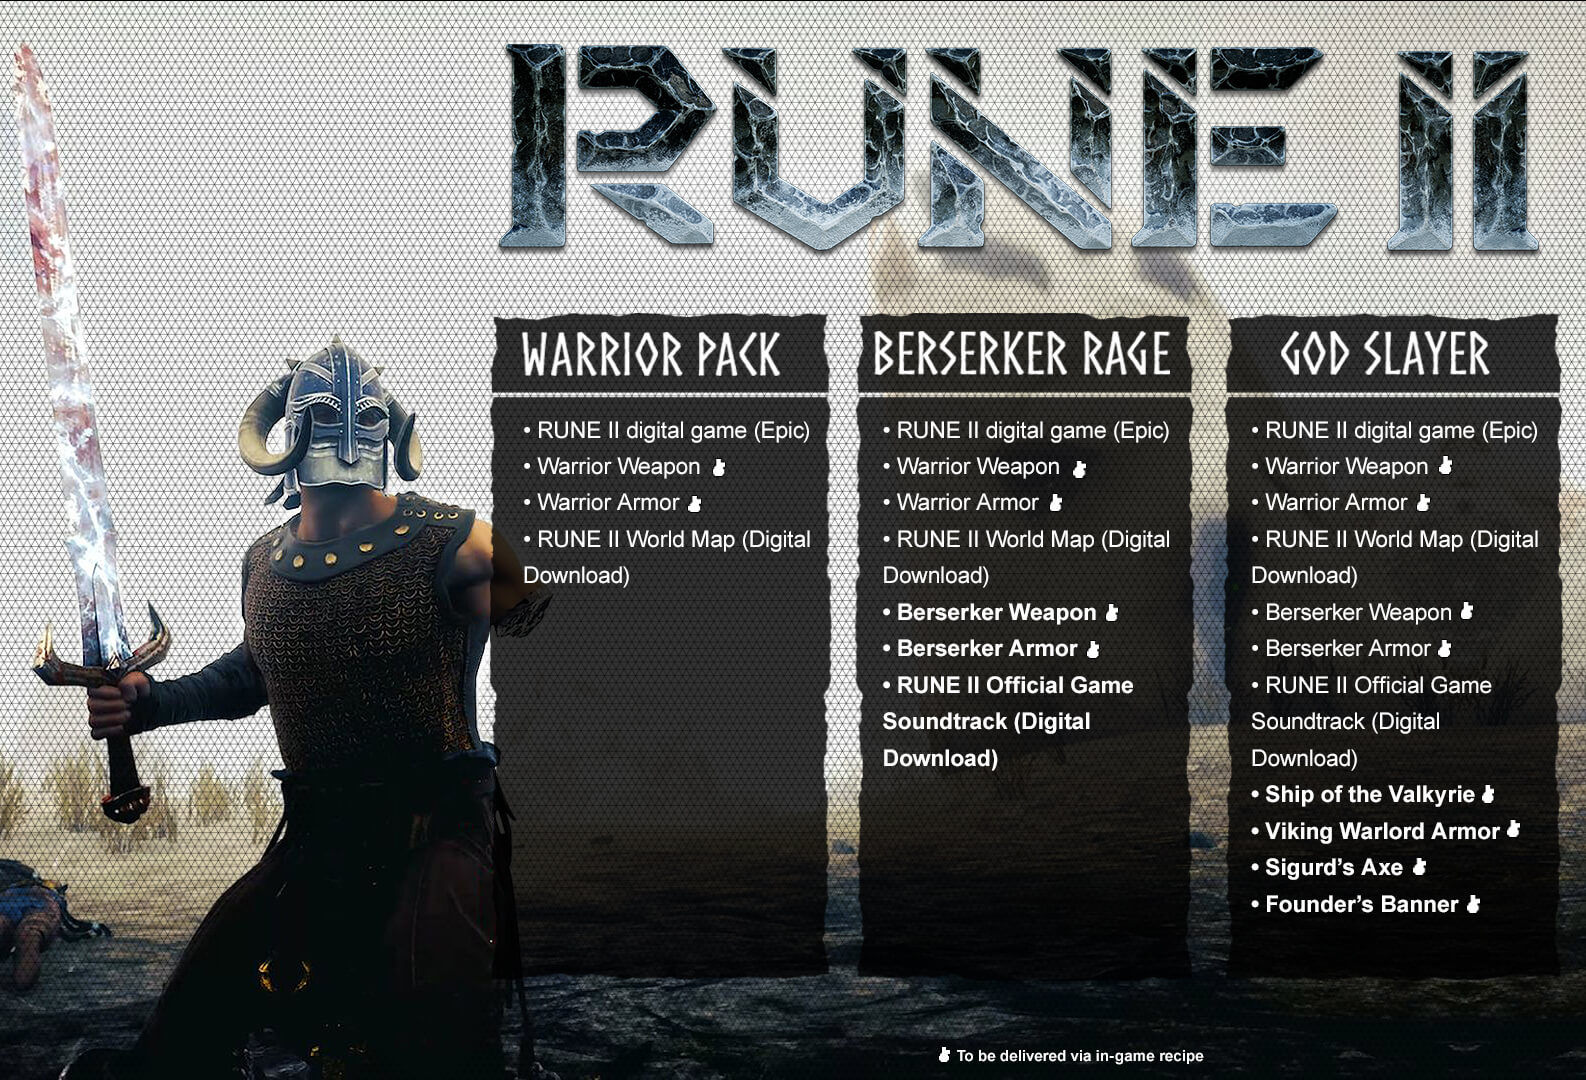 Rune II launches on November 12 for PC via Epic Games Store | RPG Site